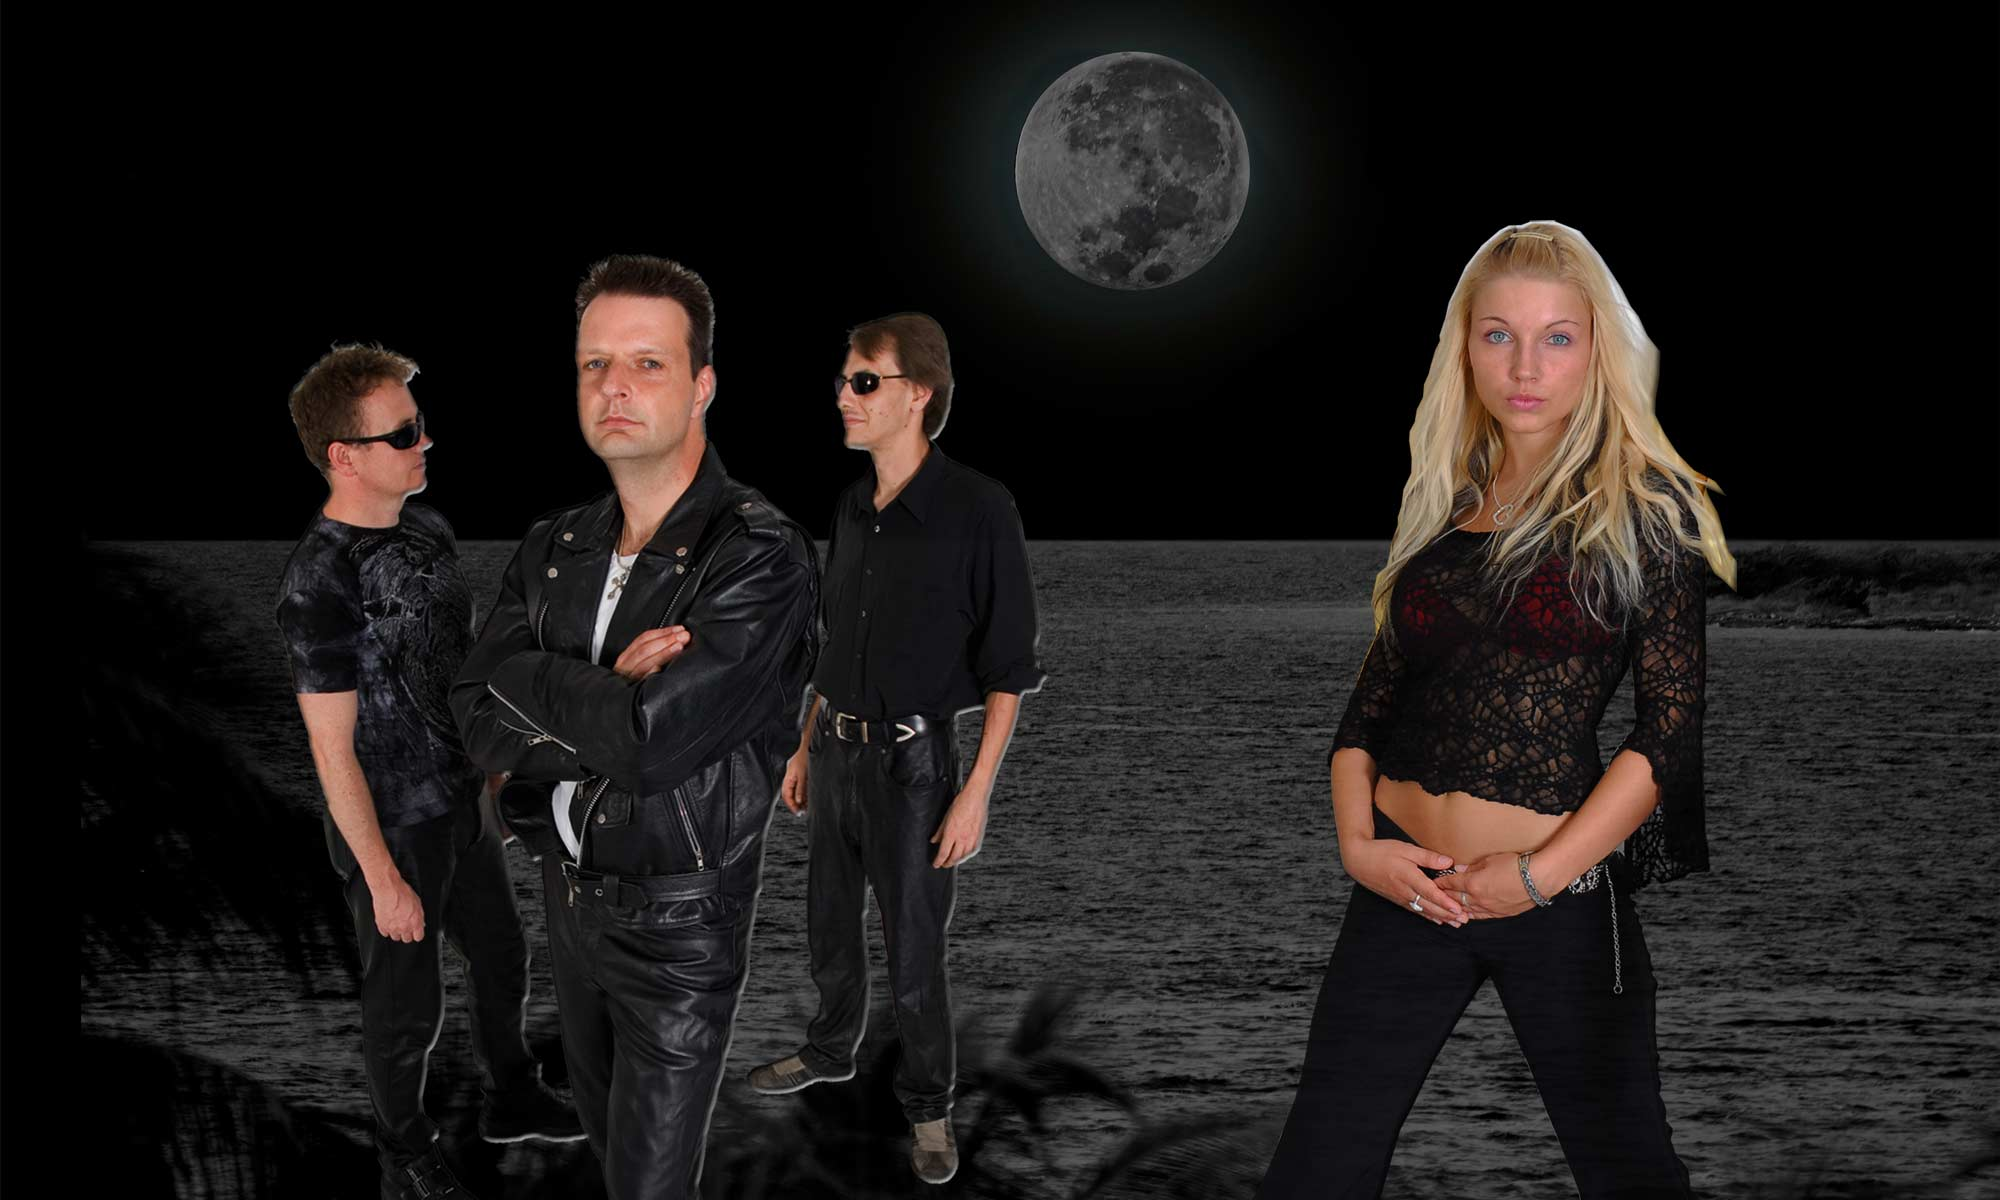 Moonlight Partyband